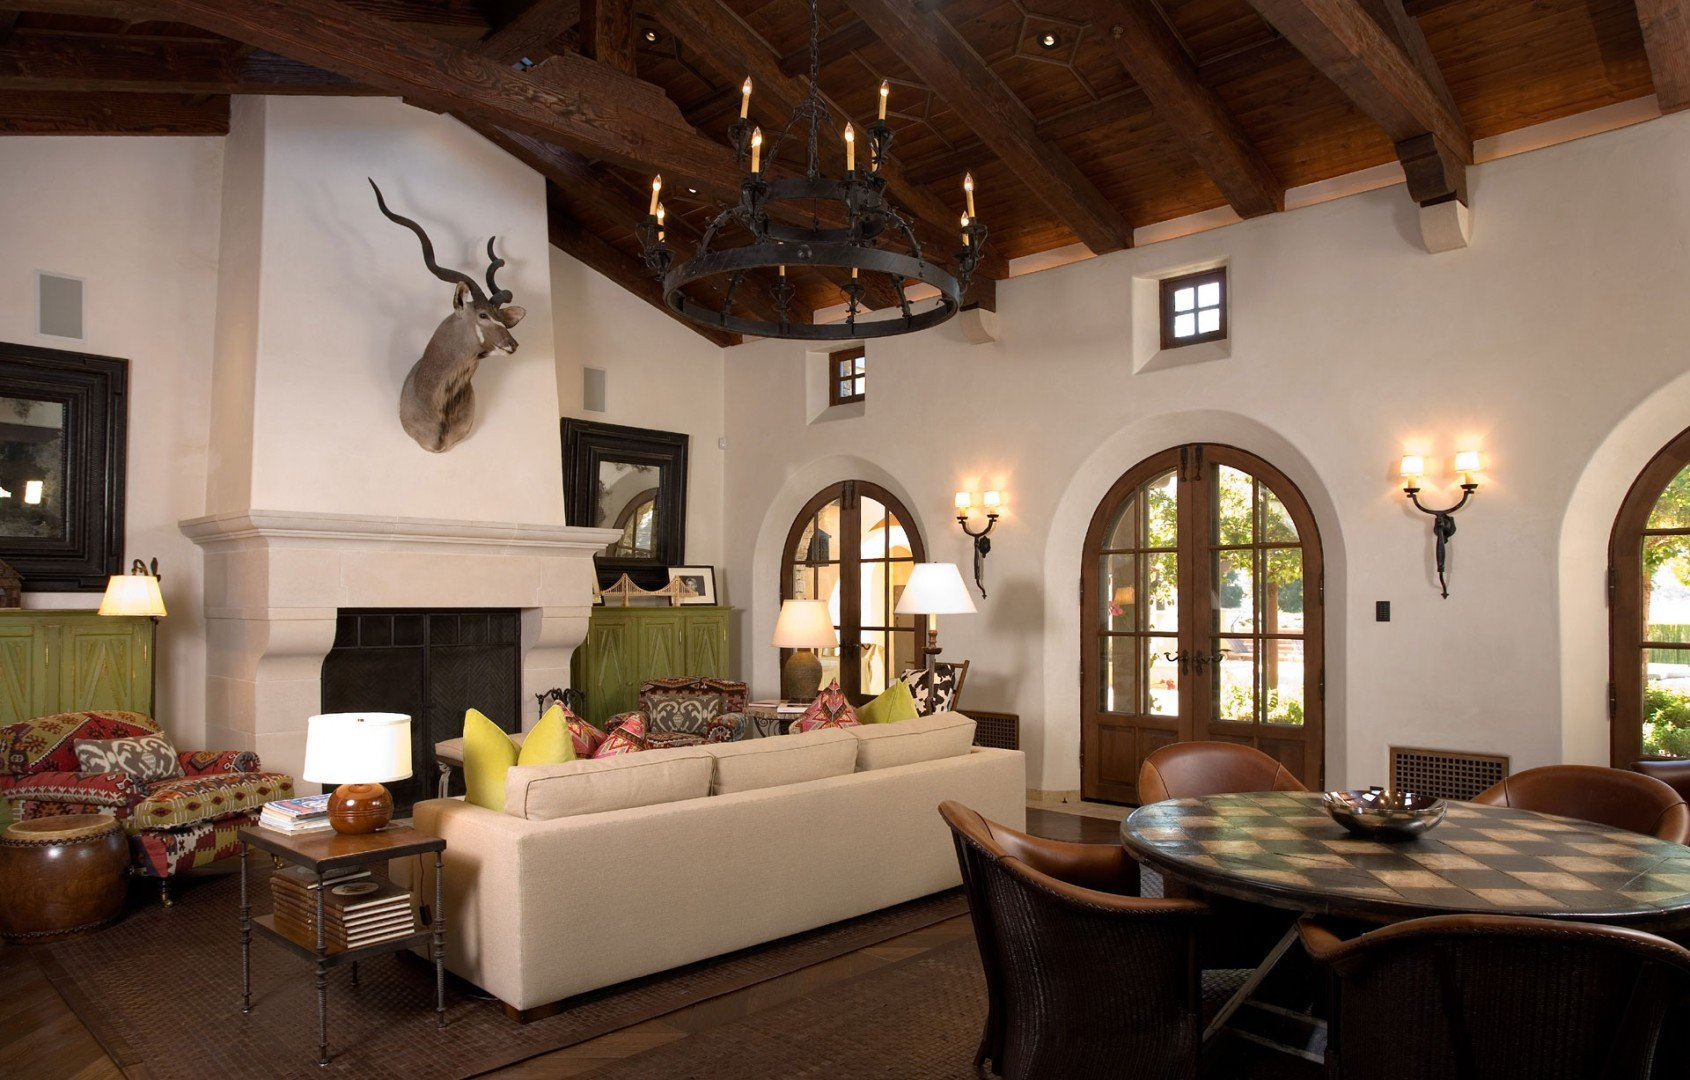 Spanish Style Home Decor Interior Lovely Interesting Spanish Home Interior Design with Nice Ideas